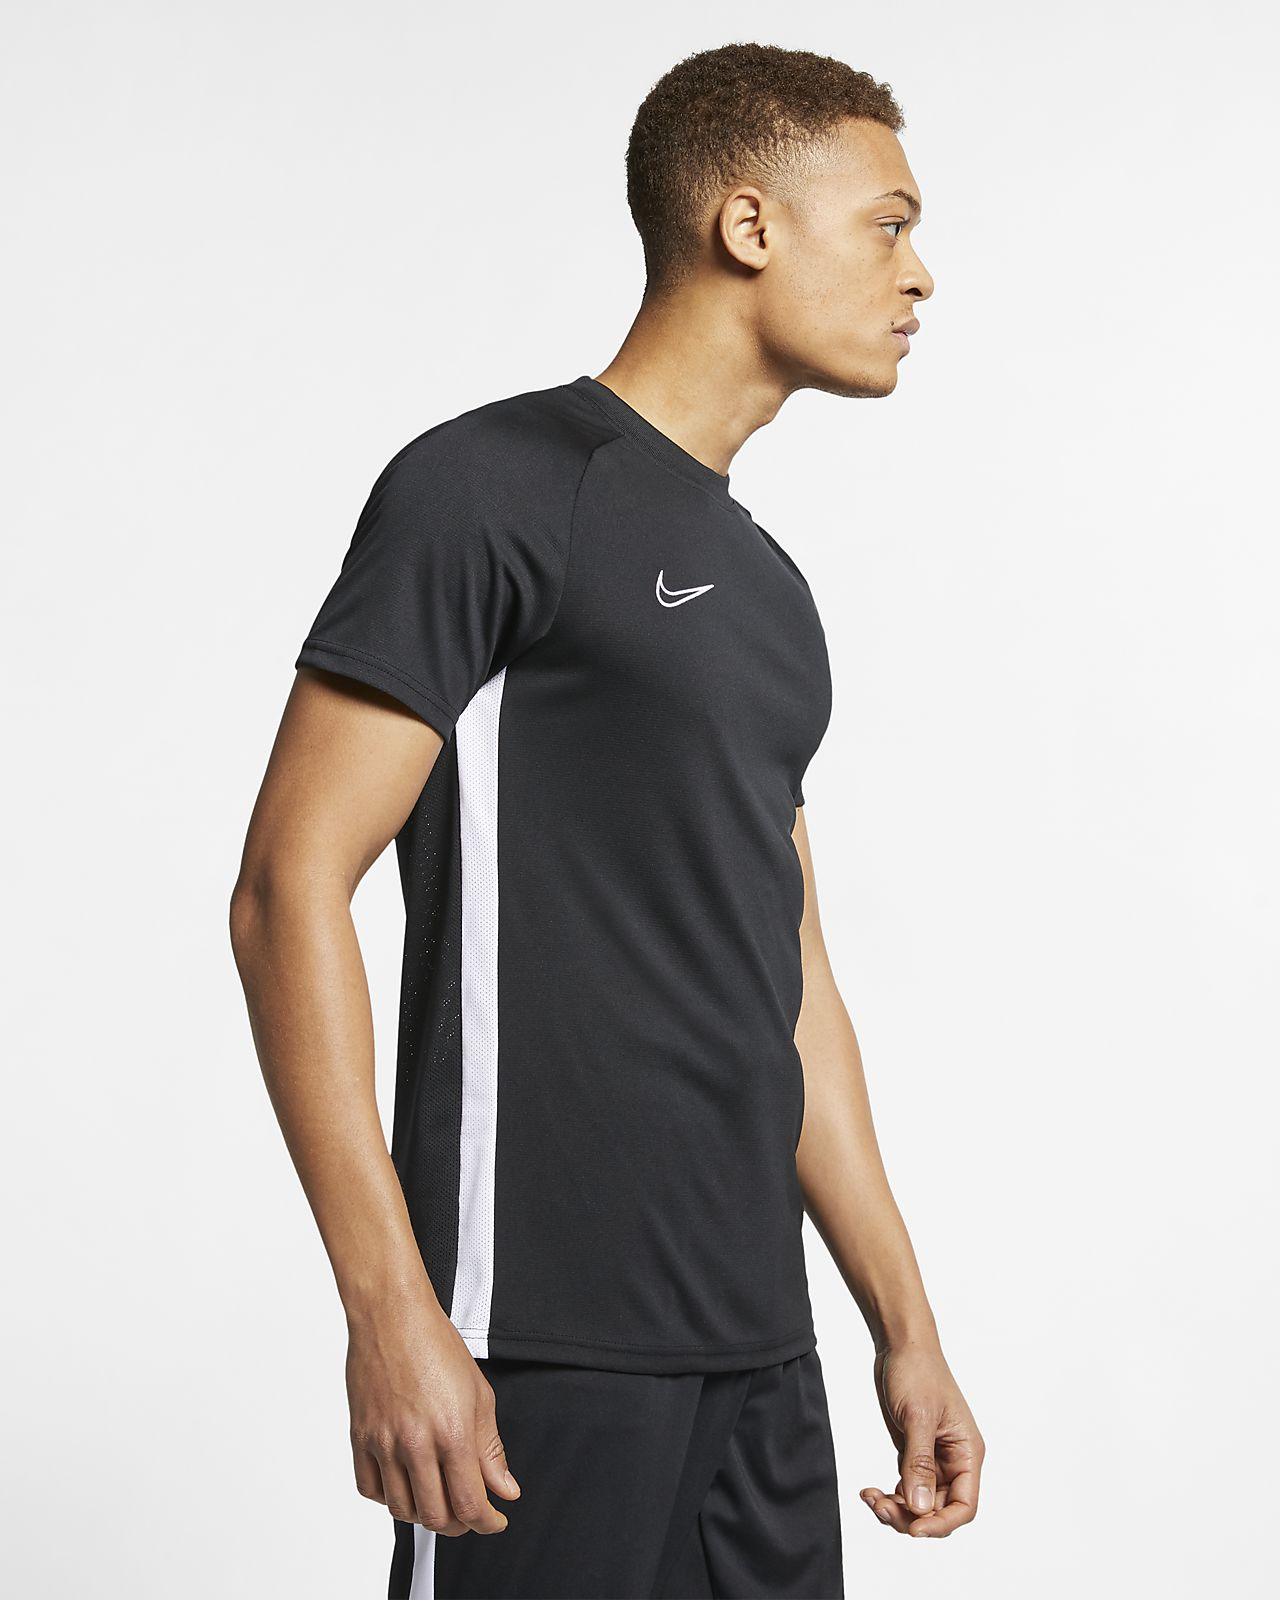 c9d58417 Nike Dri-FIT Academy Men's Soccer Short-Sleeve Top. Nike.com